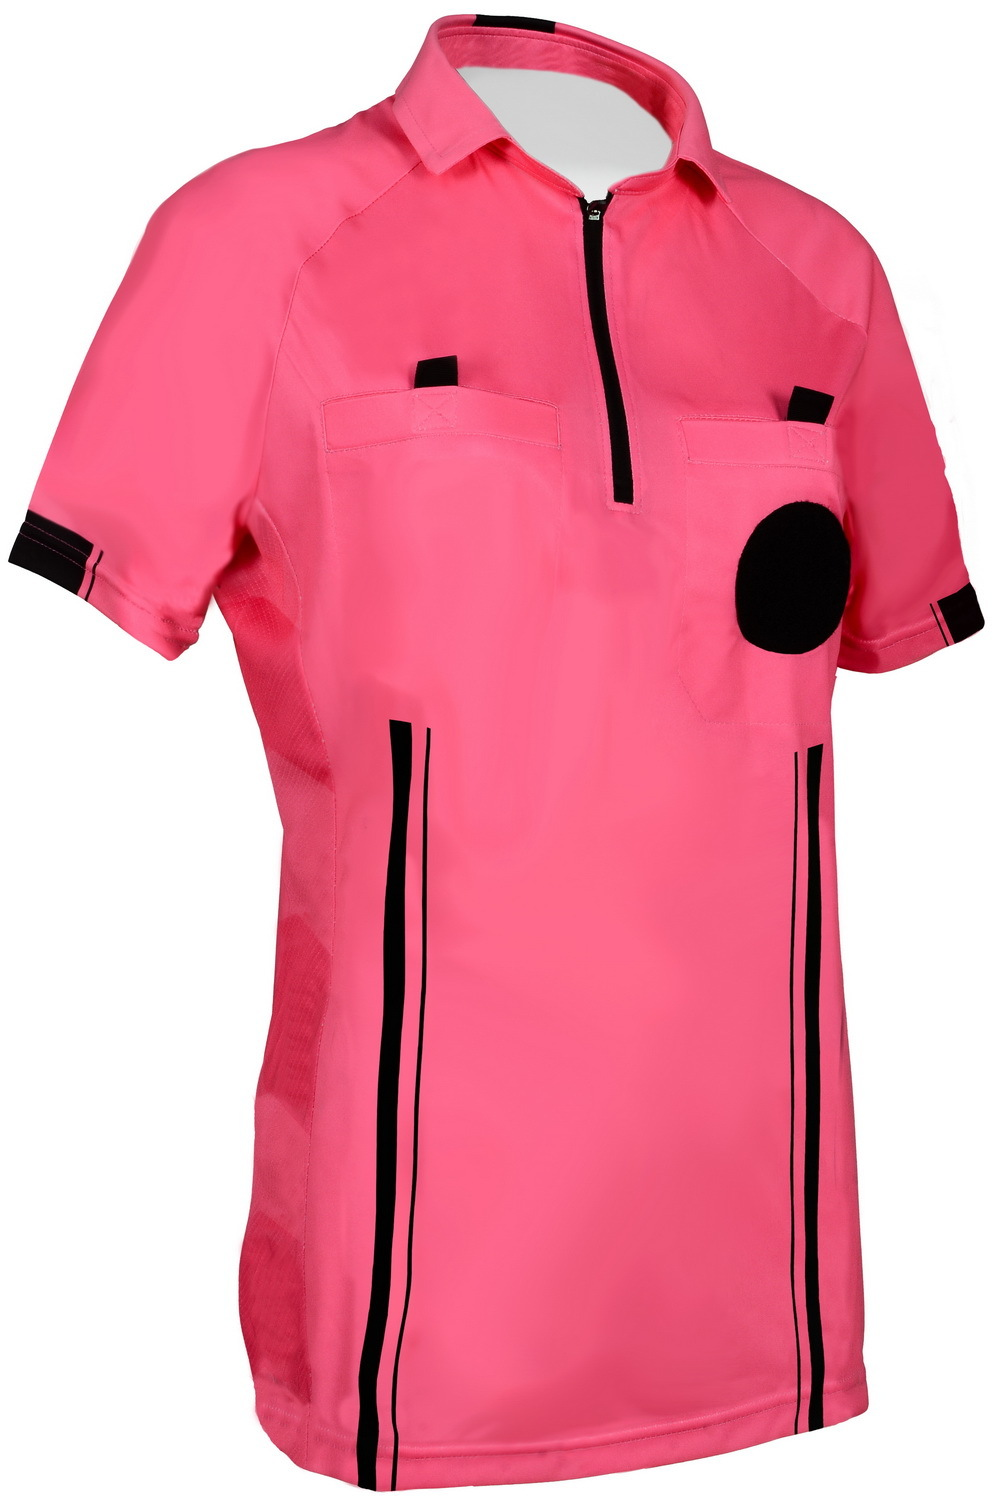 d68c664b3 New! Women s 2018 Soccer Referee Jersey and 38 similar items